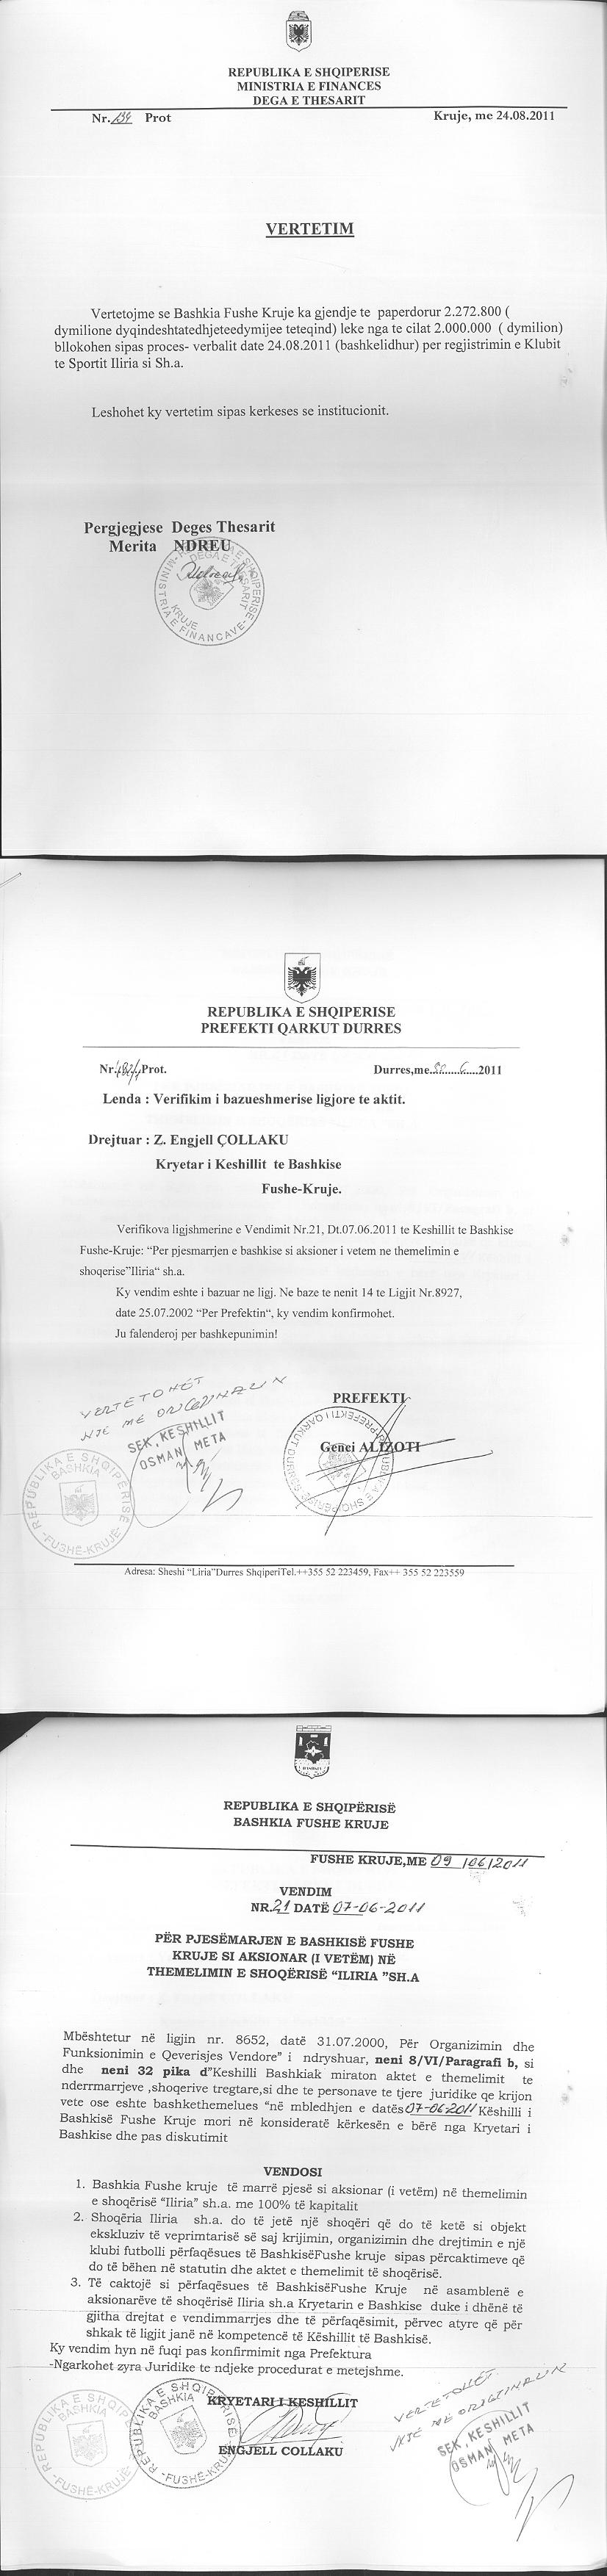 EXTRACT FORM OF A REGISTERED BUSINESS